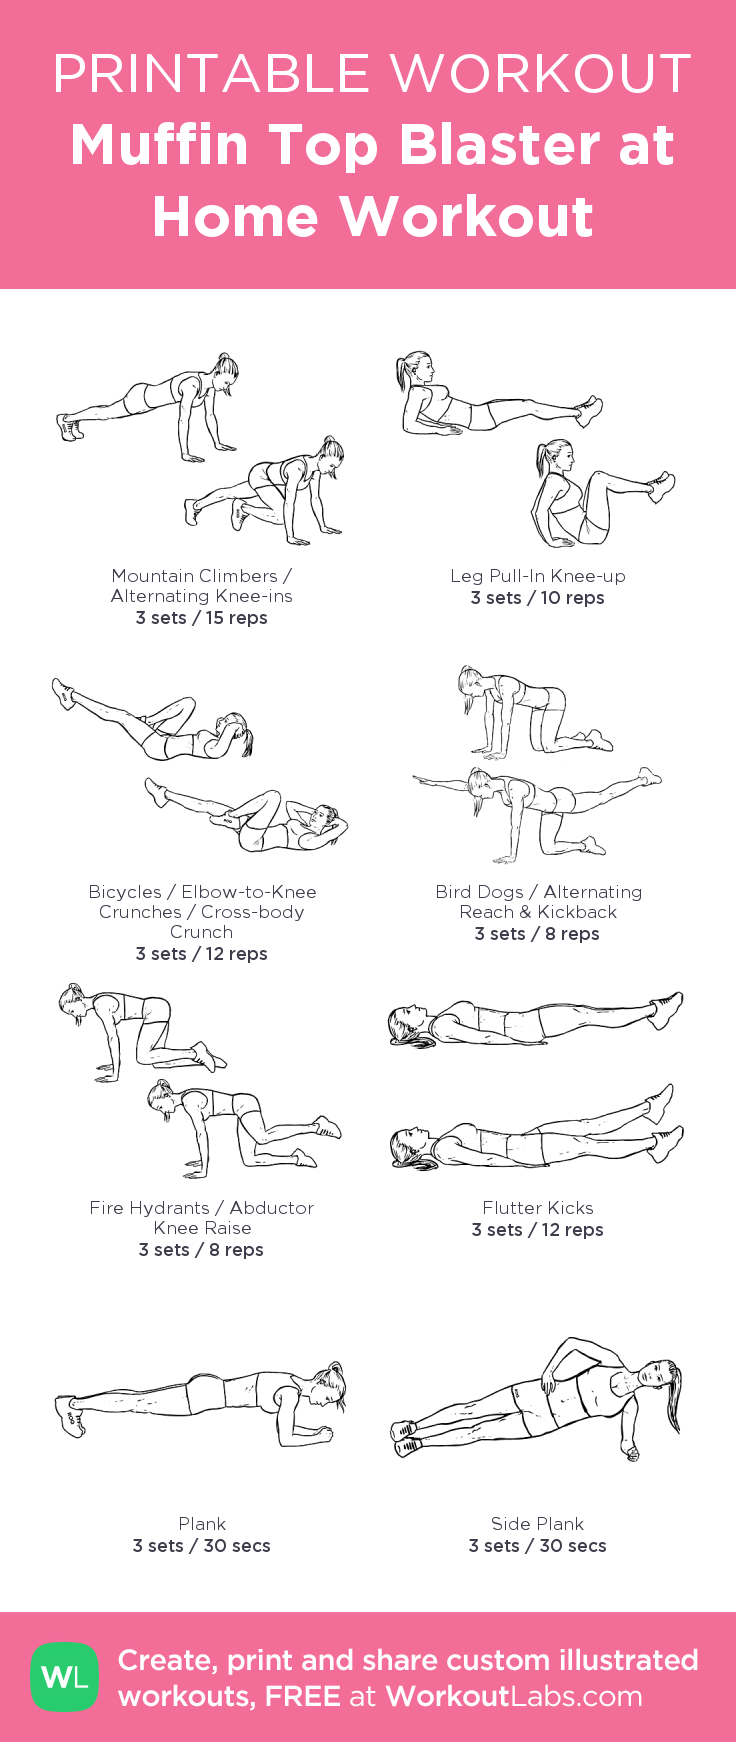 photograph about Printable Ab Workout titled Pin upon Physical fitness physical fitness